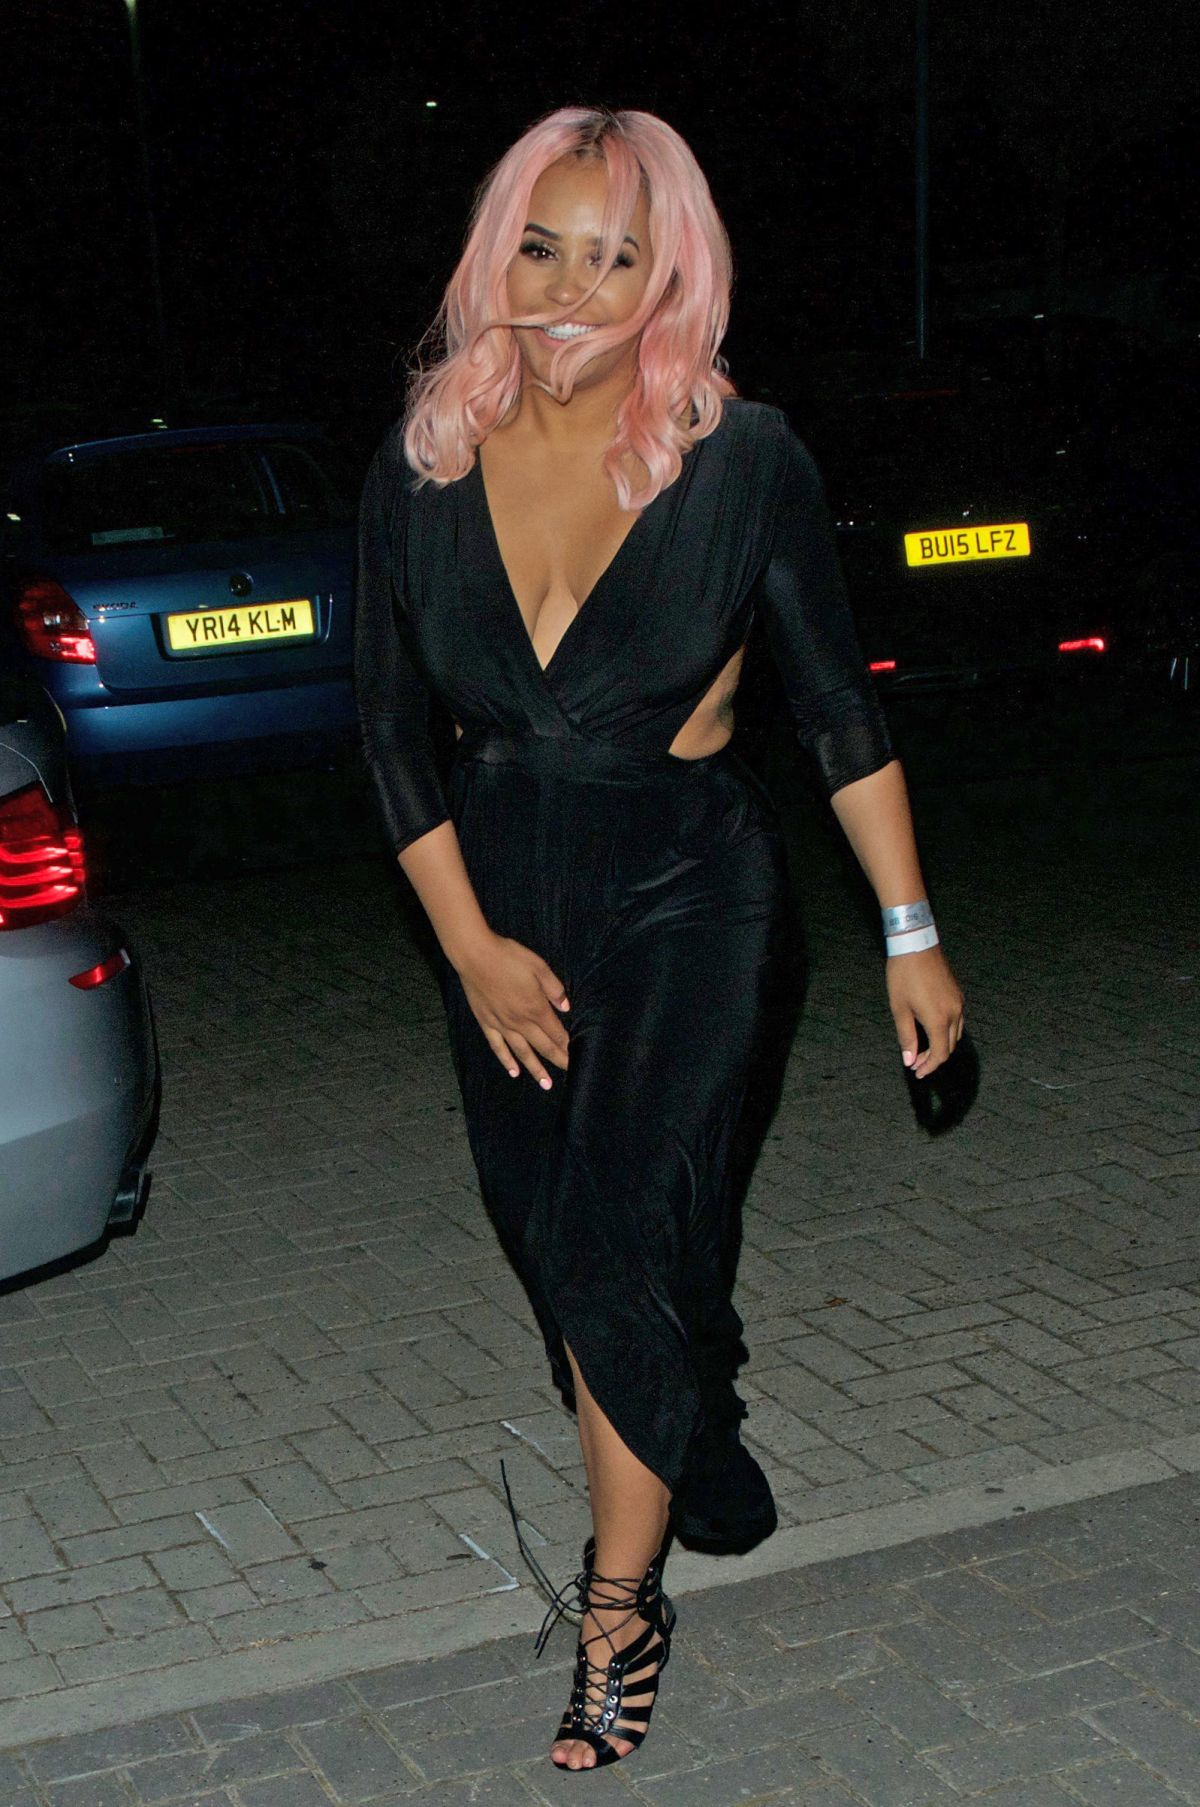 LATEYSHA GRACE at Big Brother After Party in London 07/27/2016